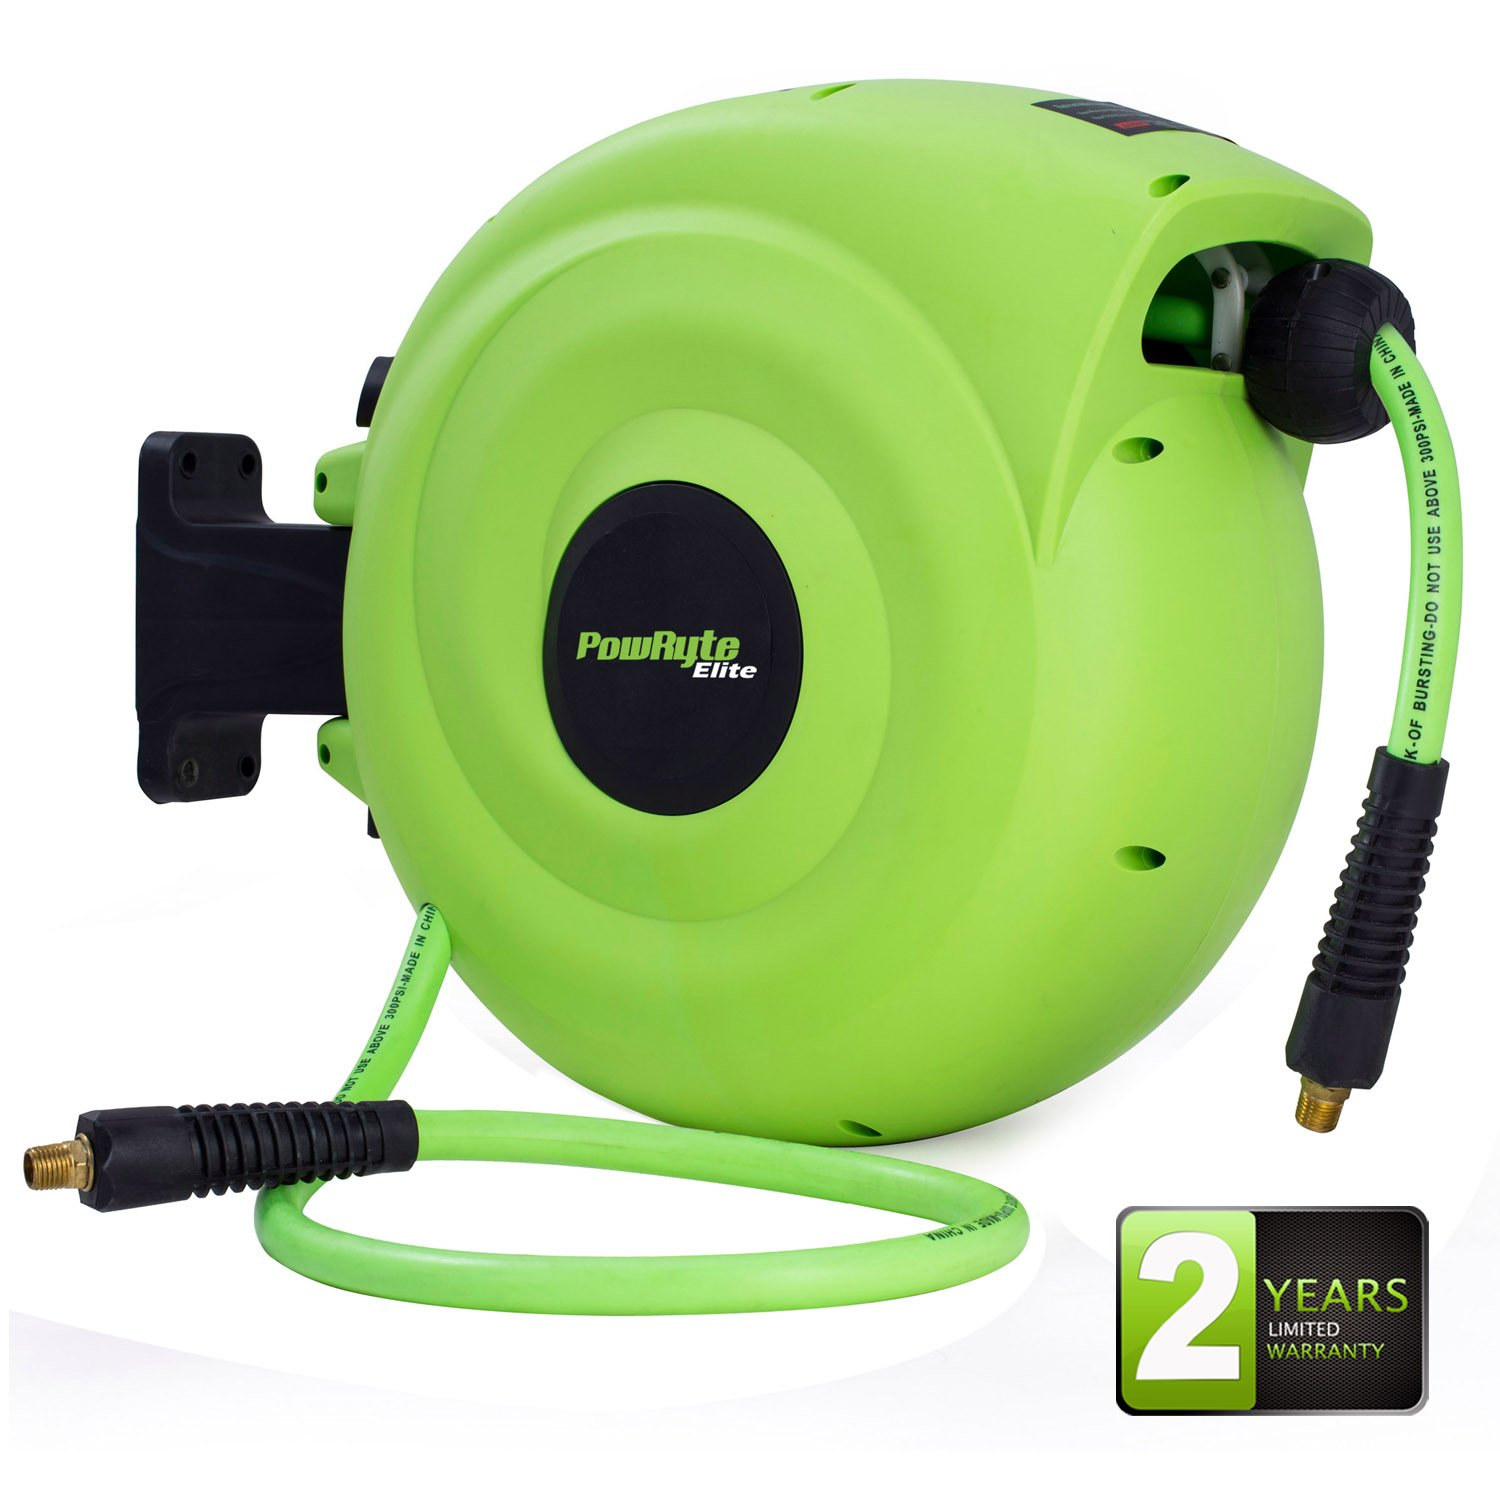 Details About Powryte Elite Retractable Air Hose Reel With 3 8 Inch By 50 Feet Hybrid Hose